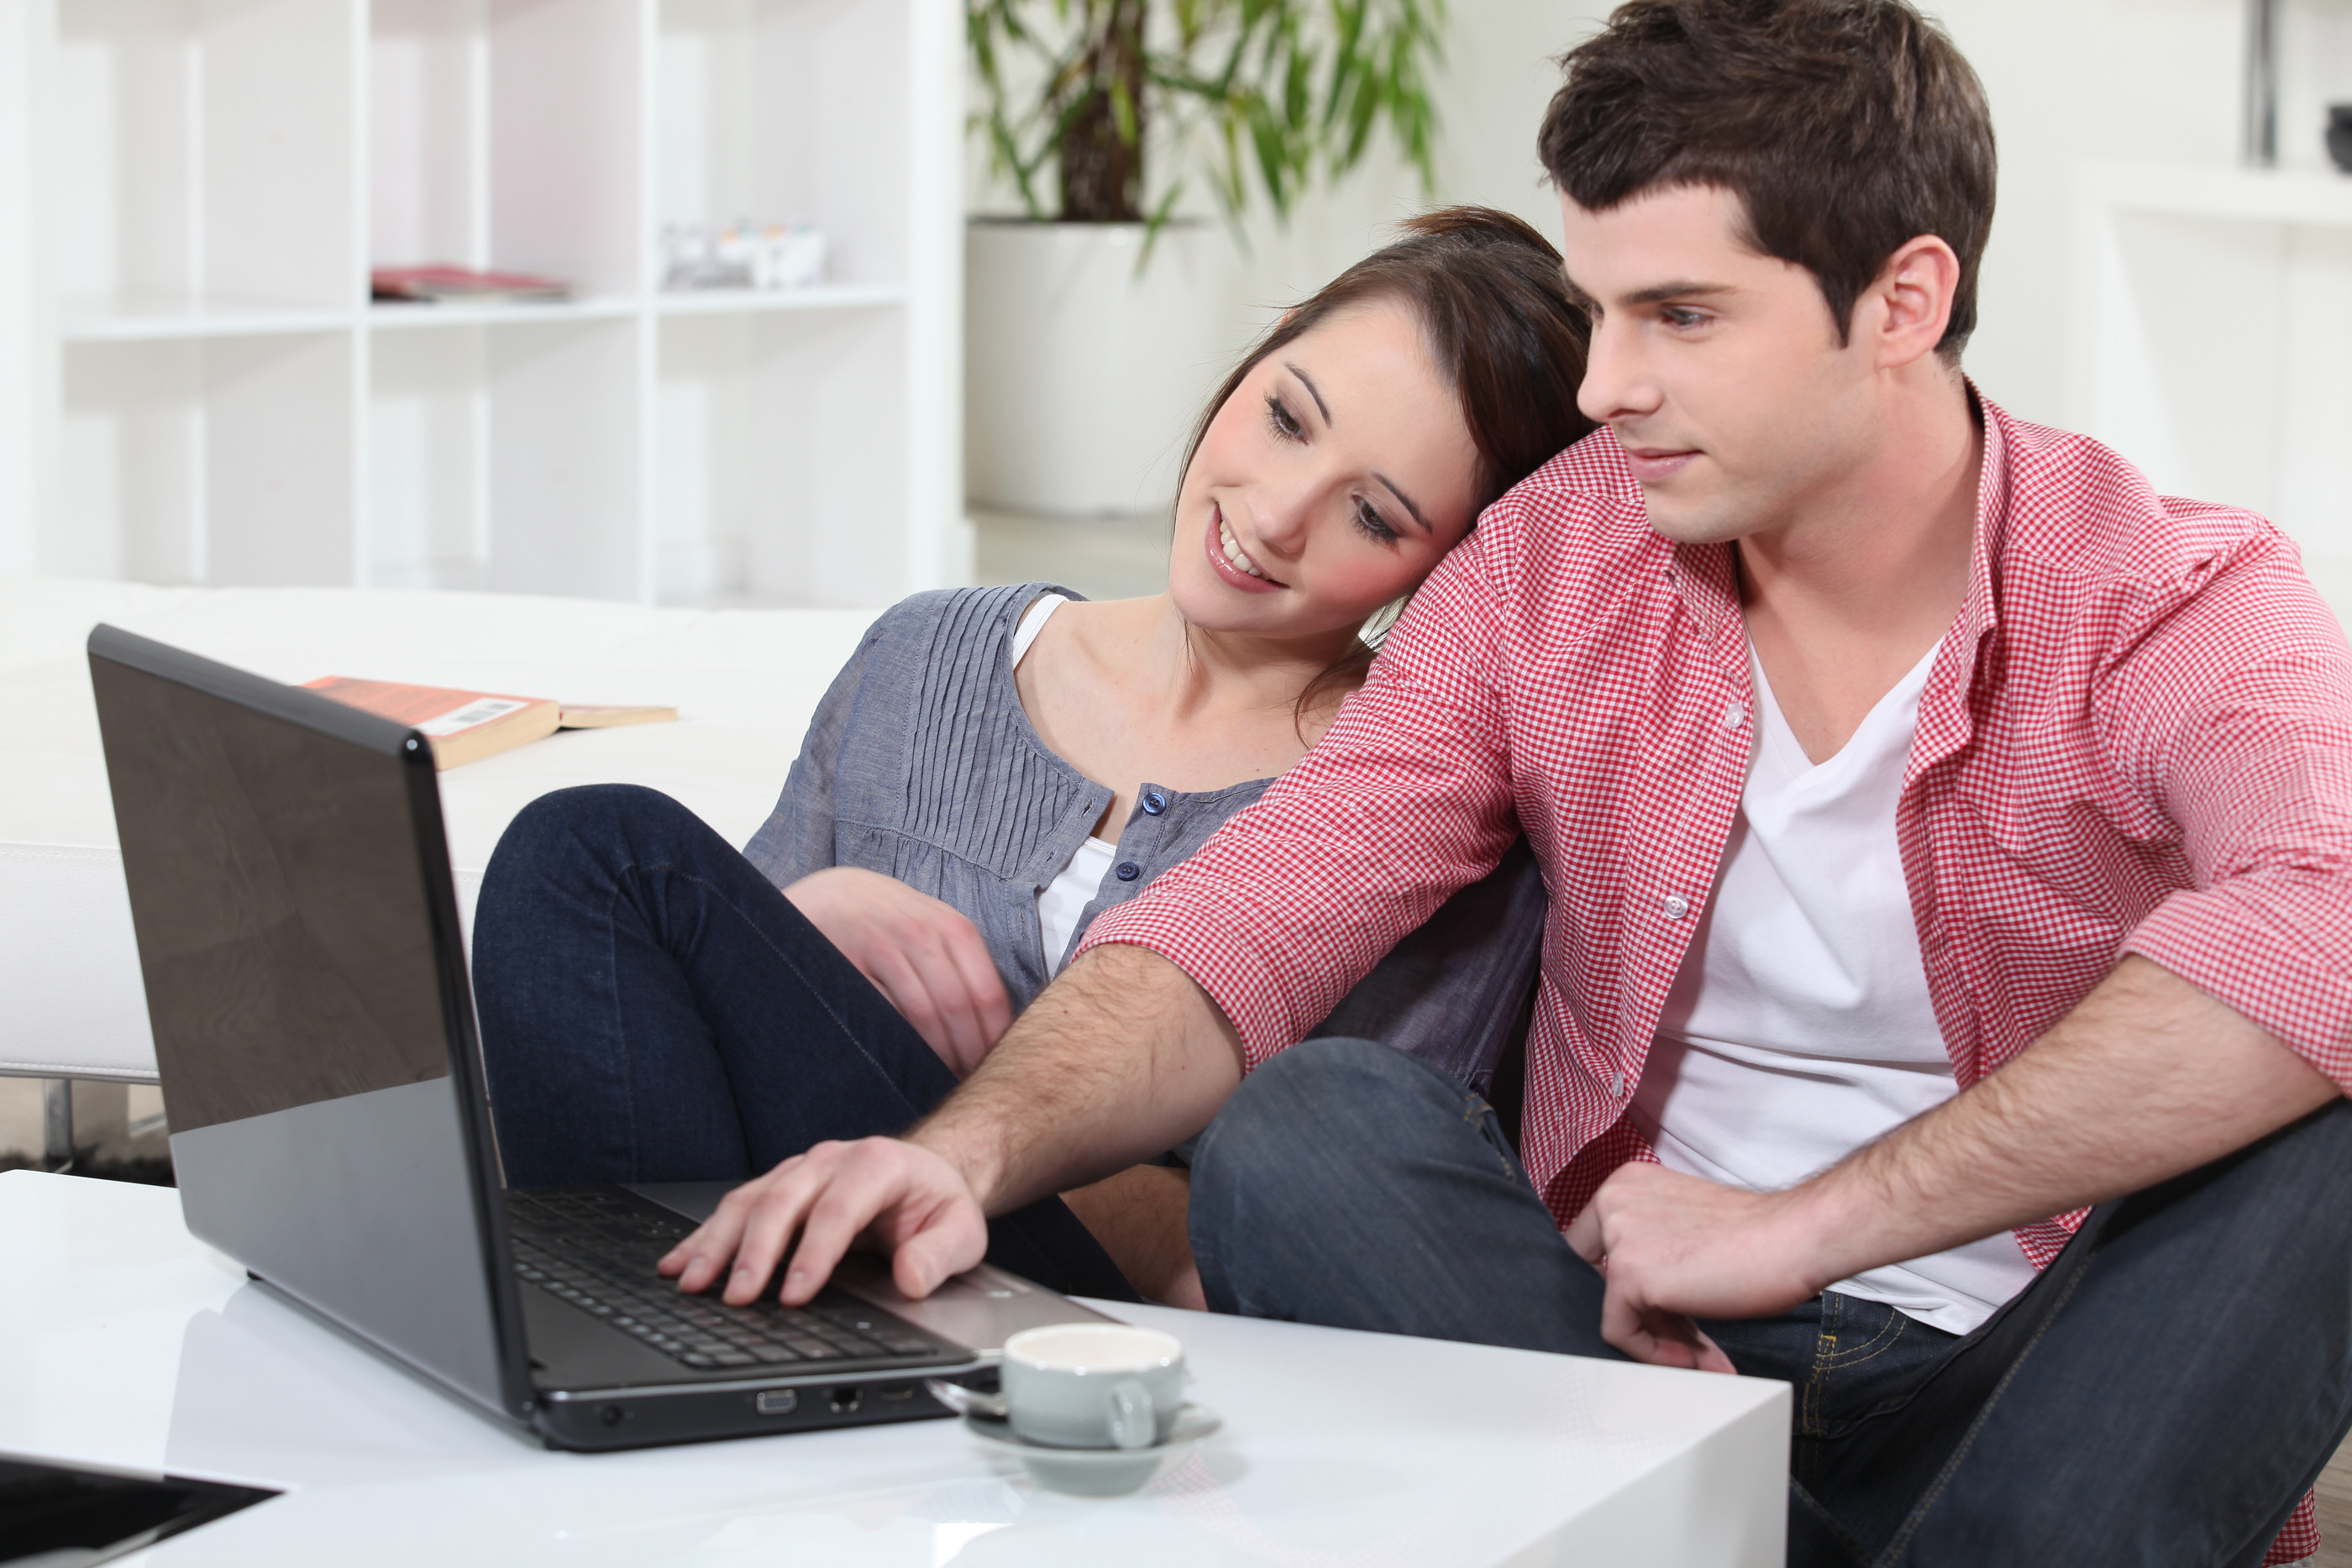 Marriage Urgent Care by online video